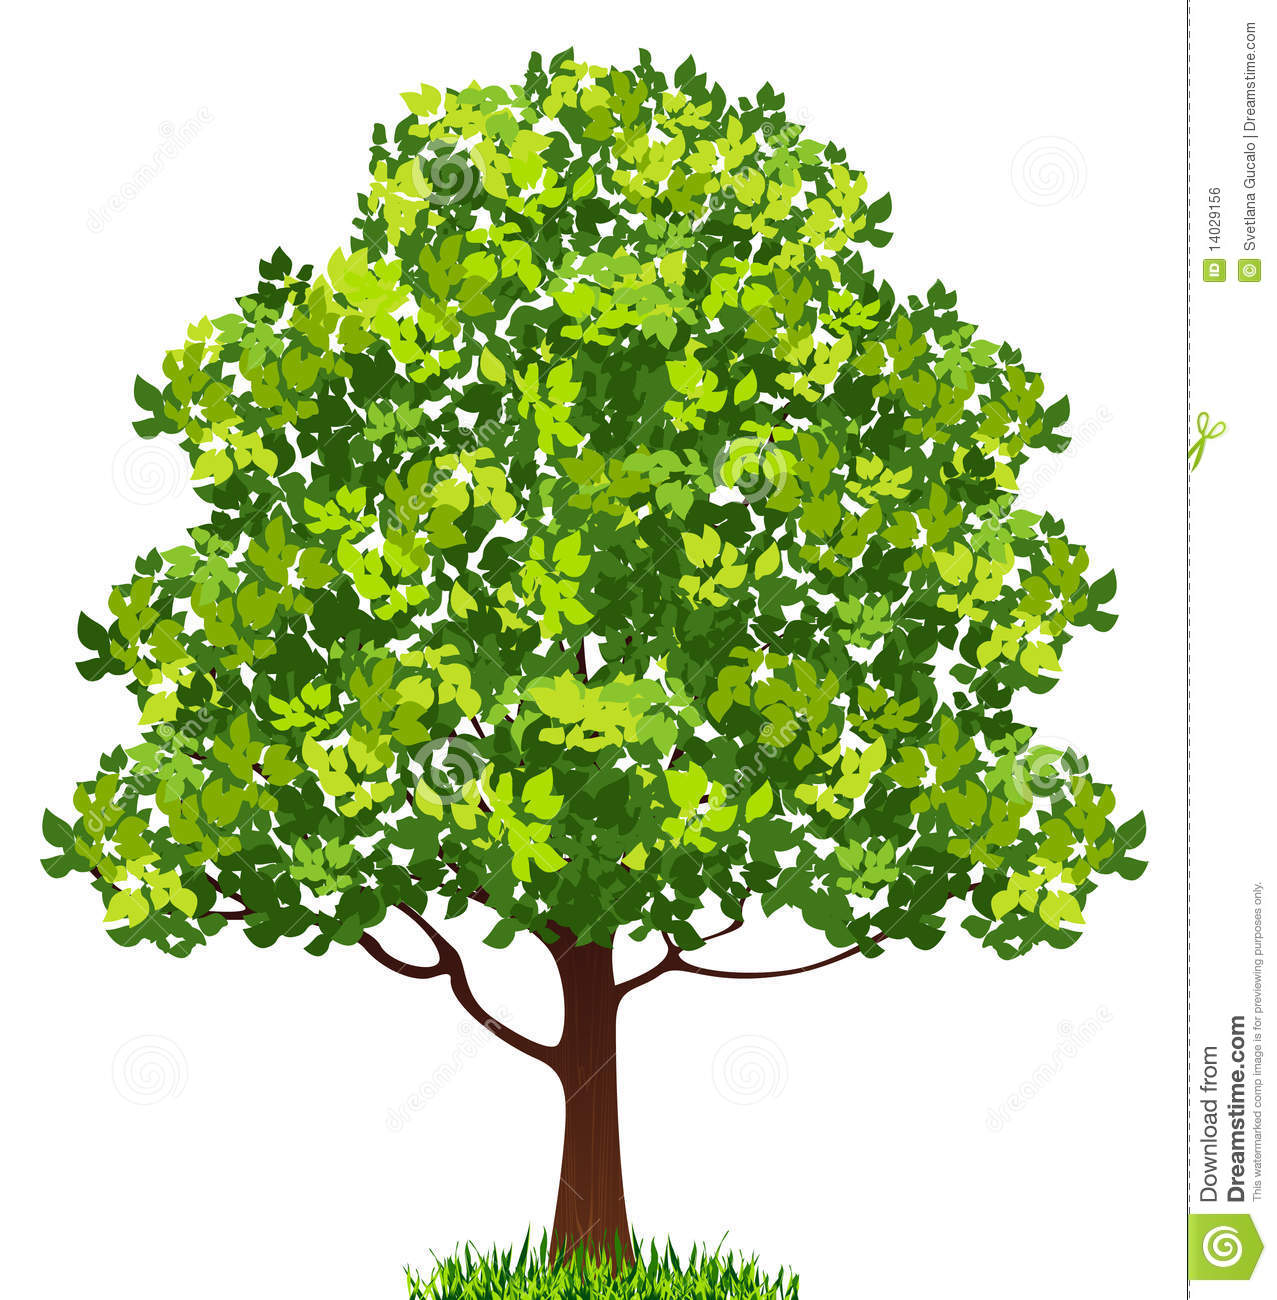 Tree Royalty Free Stock Image - Image: 14029156